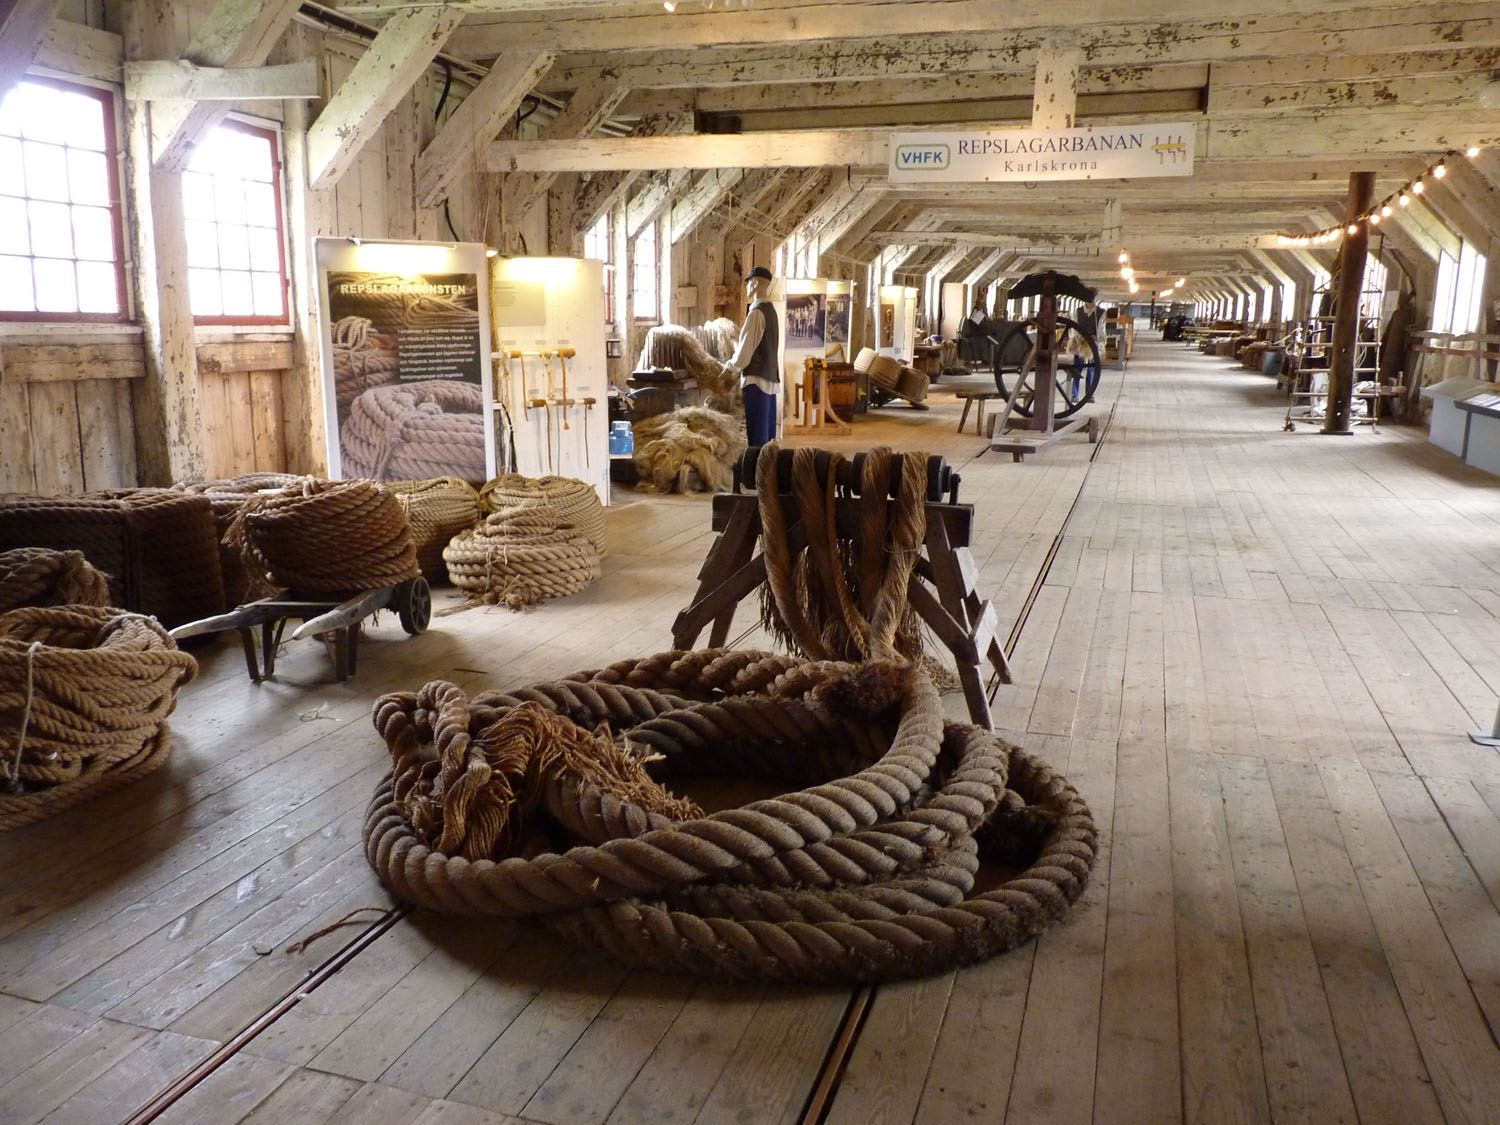 Guided tour - Boat tour and World Heritage tour with ropemaking